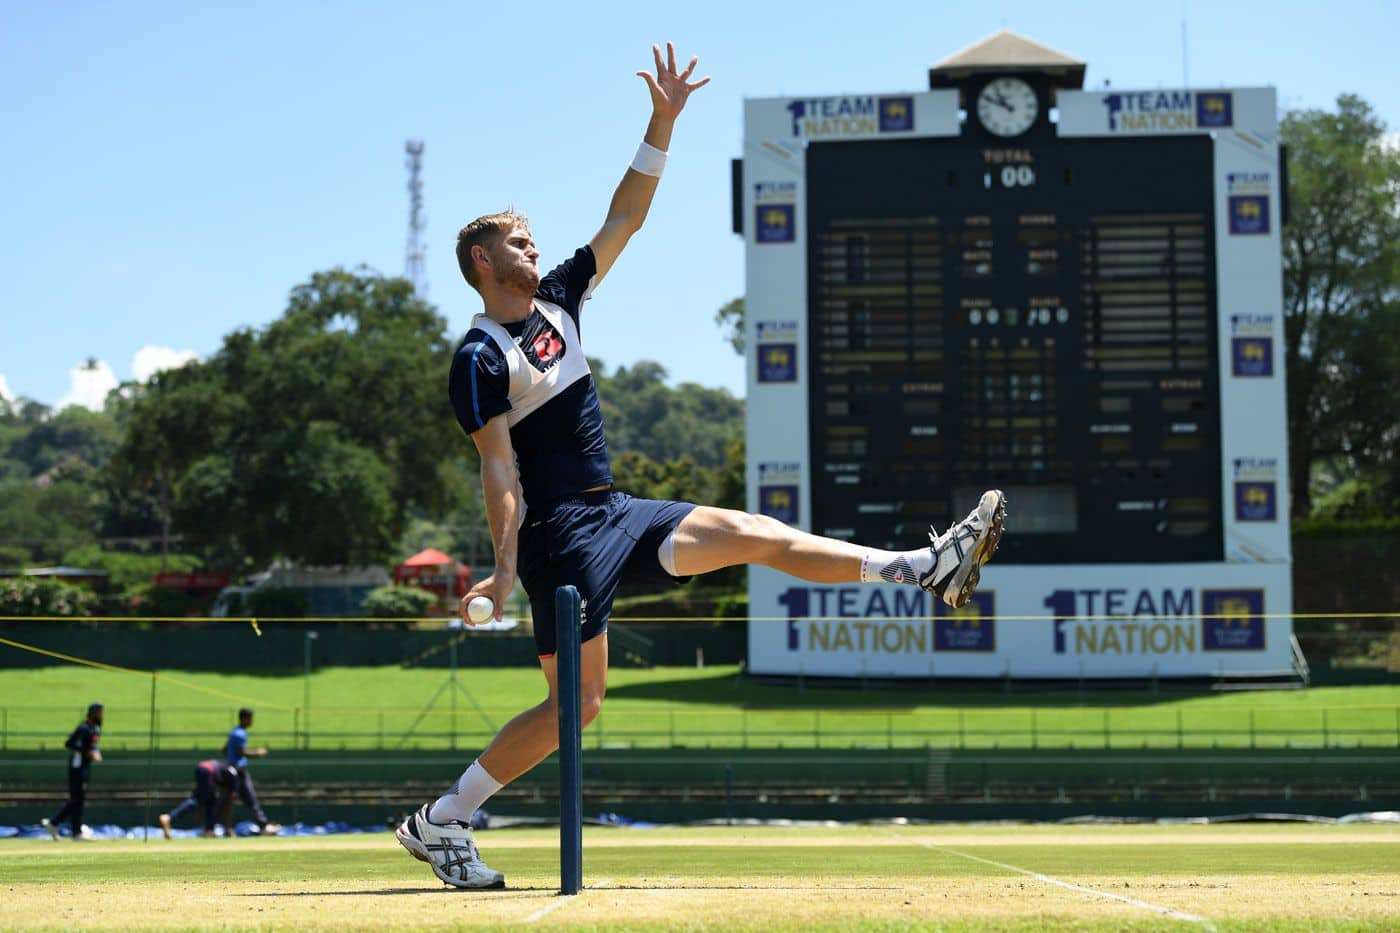 Injured Olly Stone out of West Indies Tests